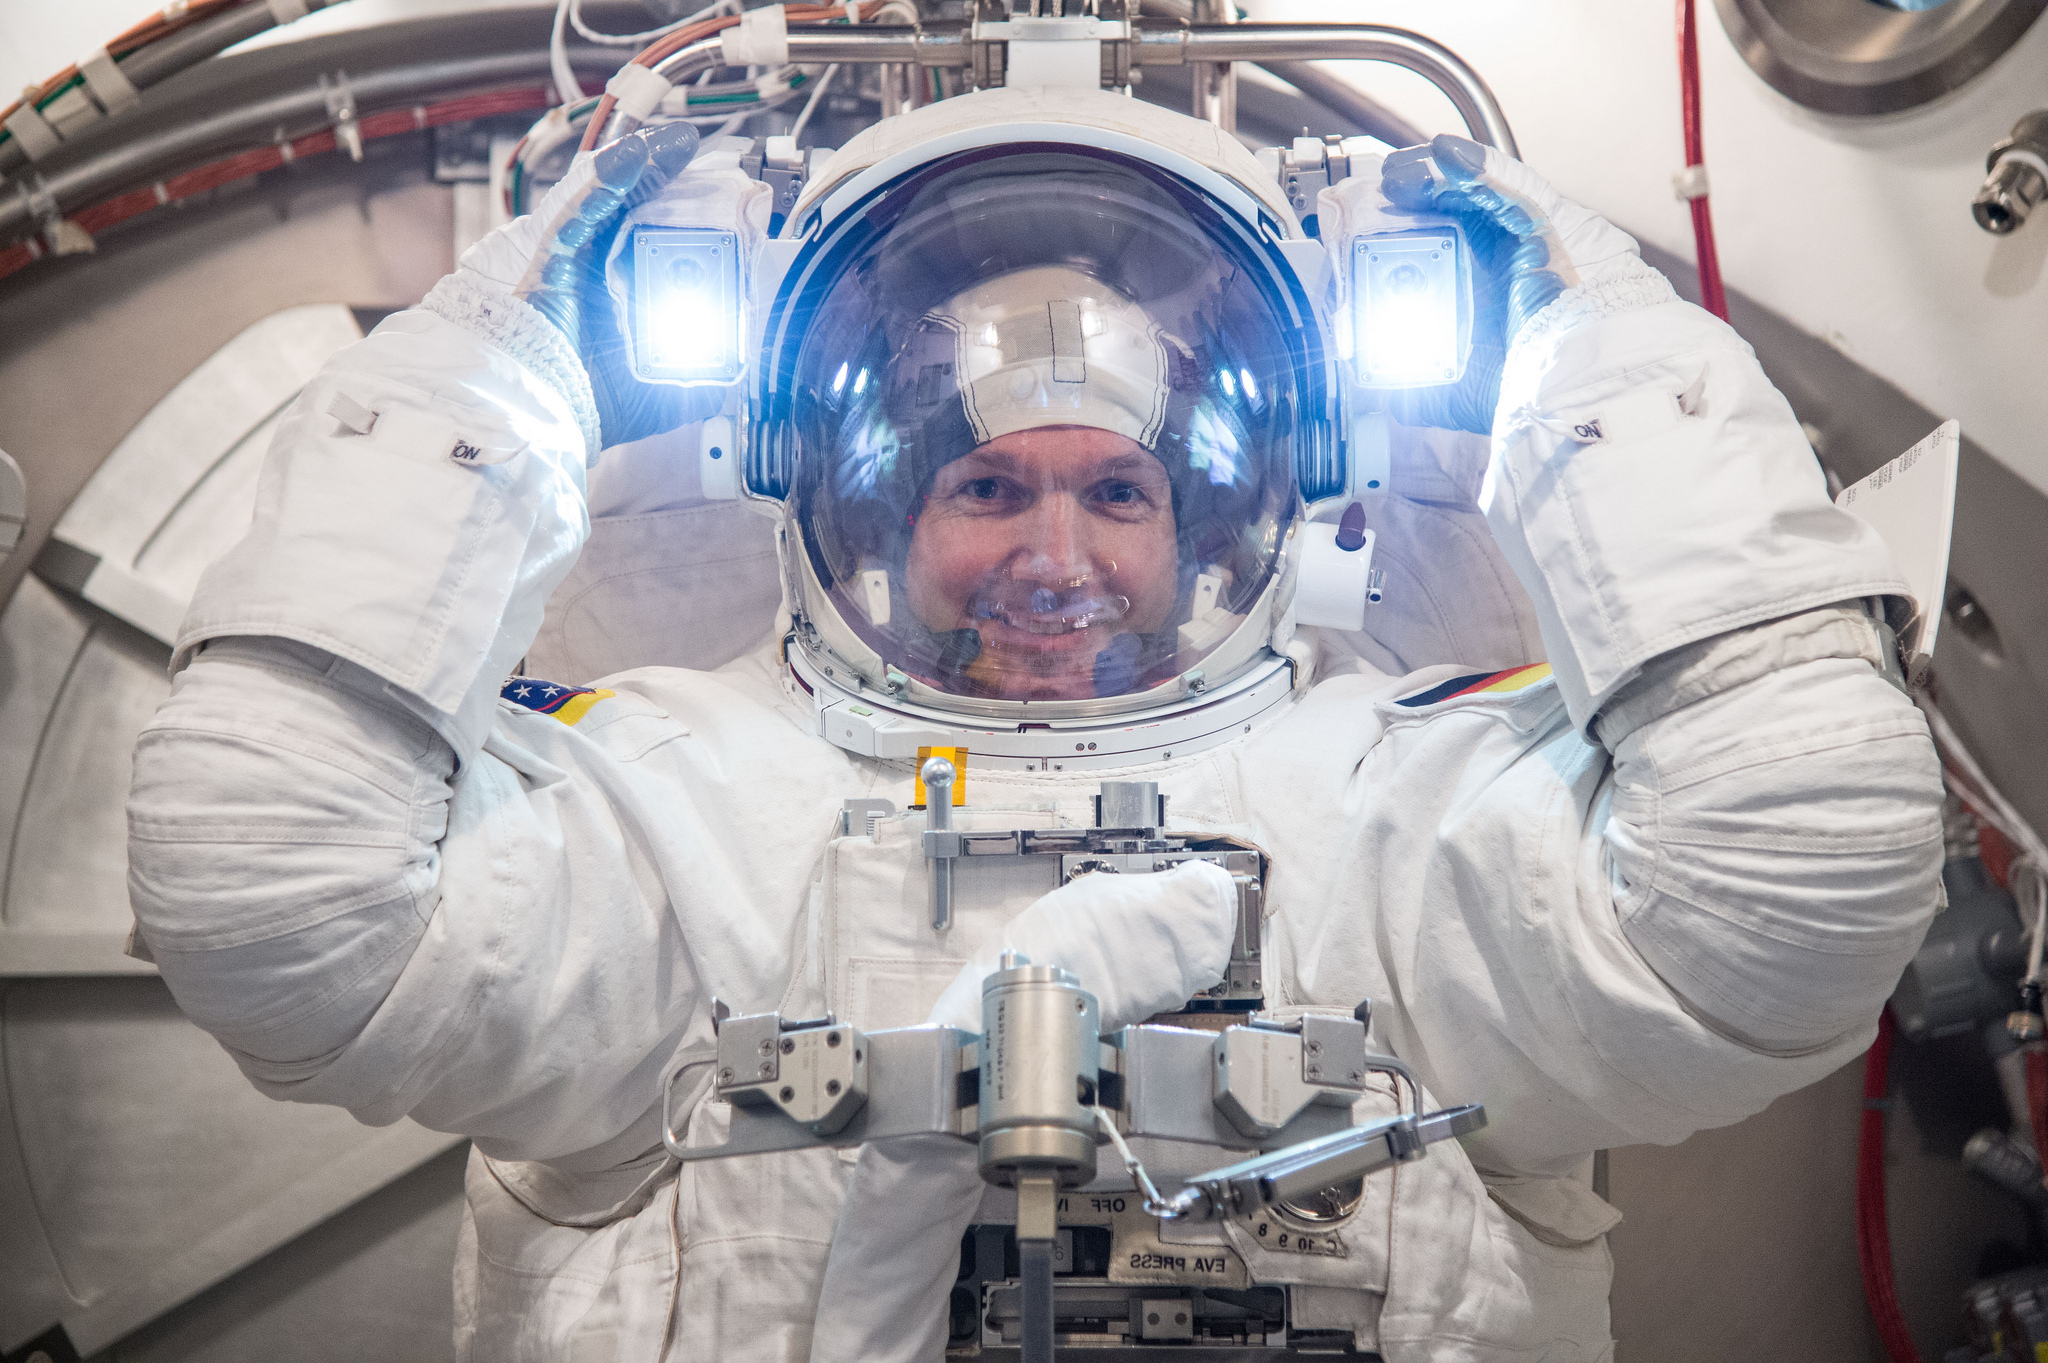 astronaut to space - photo #46